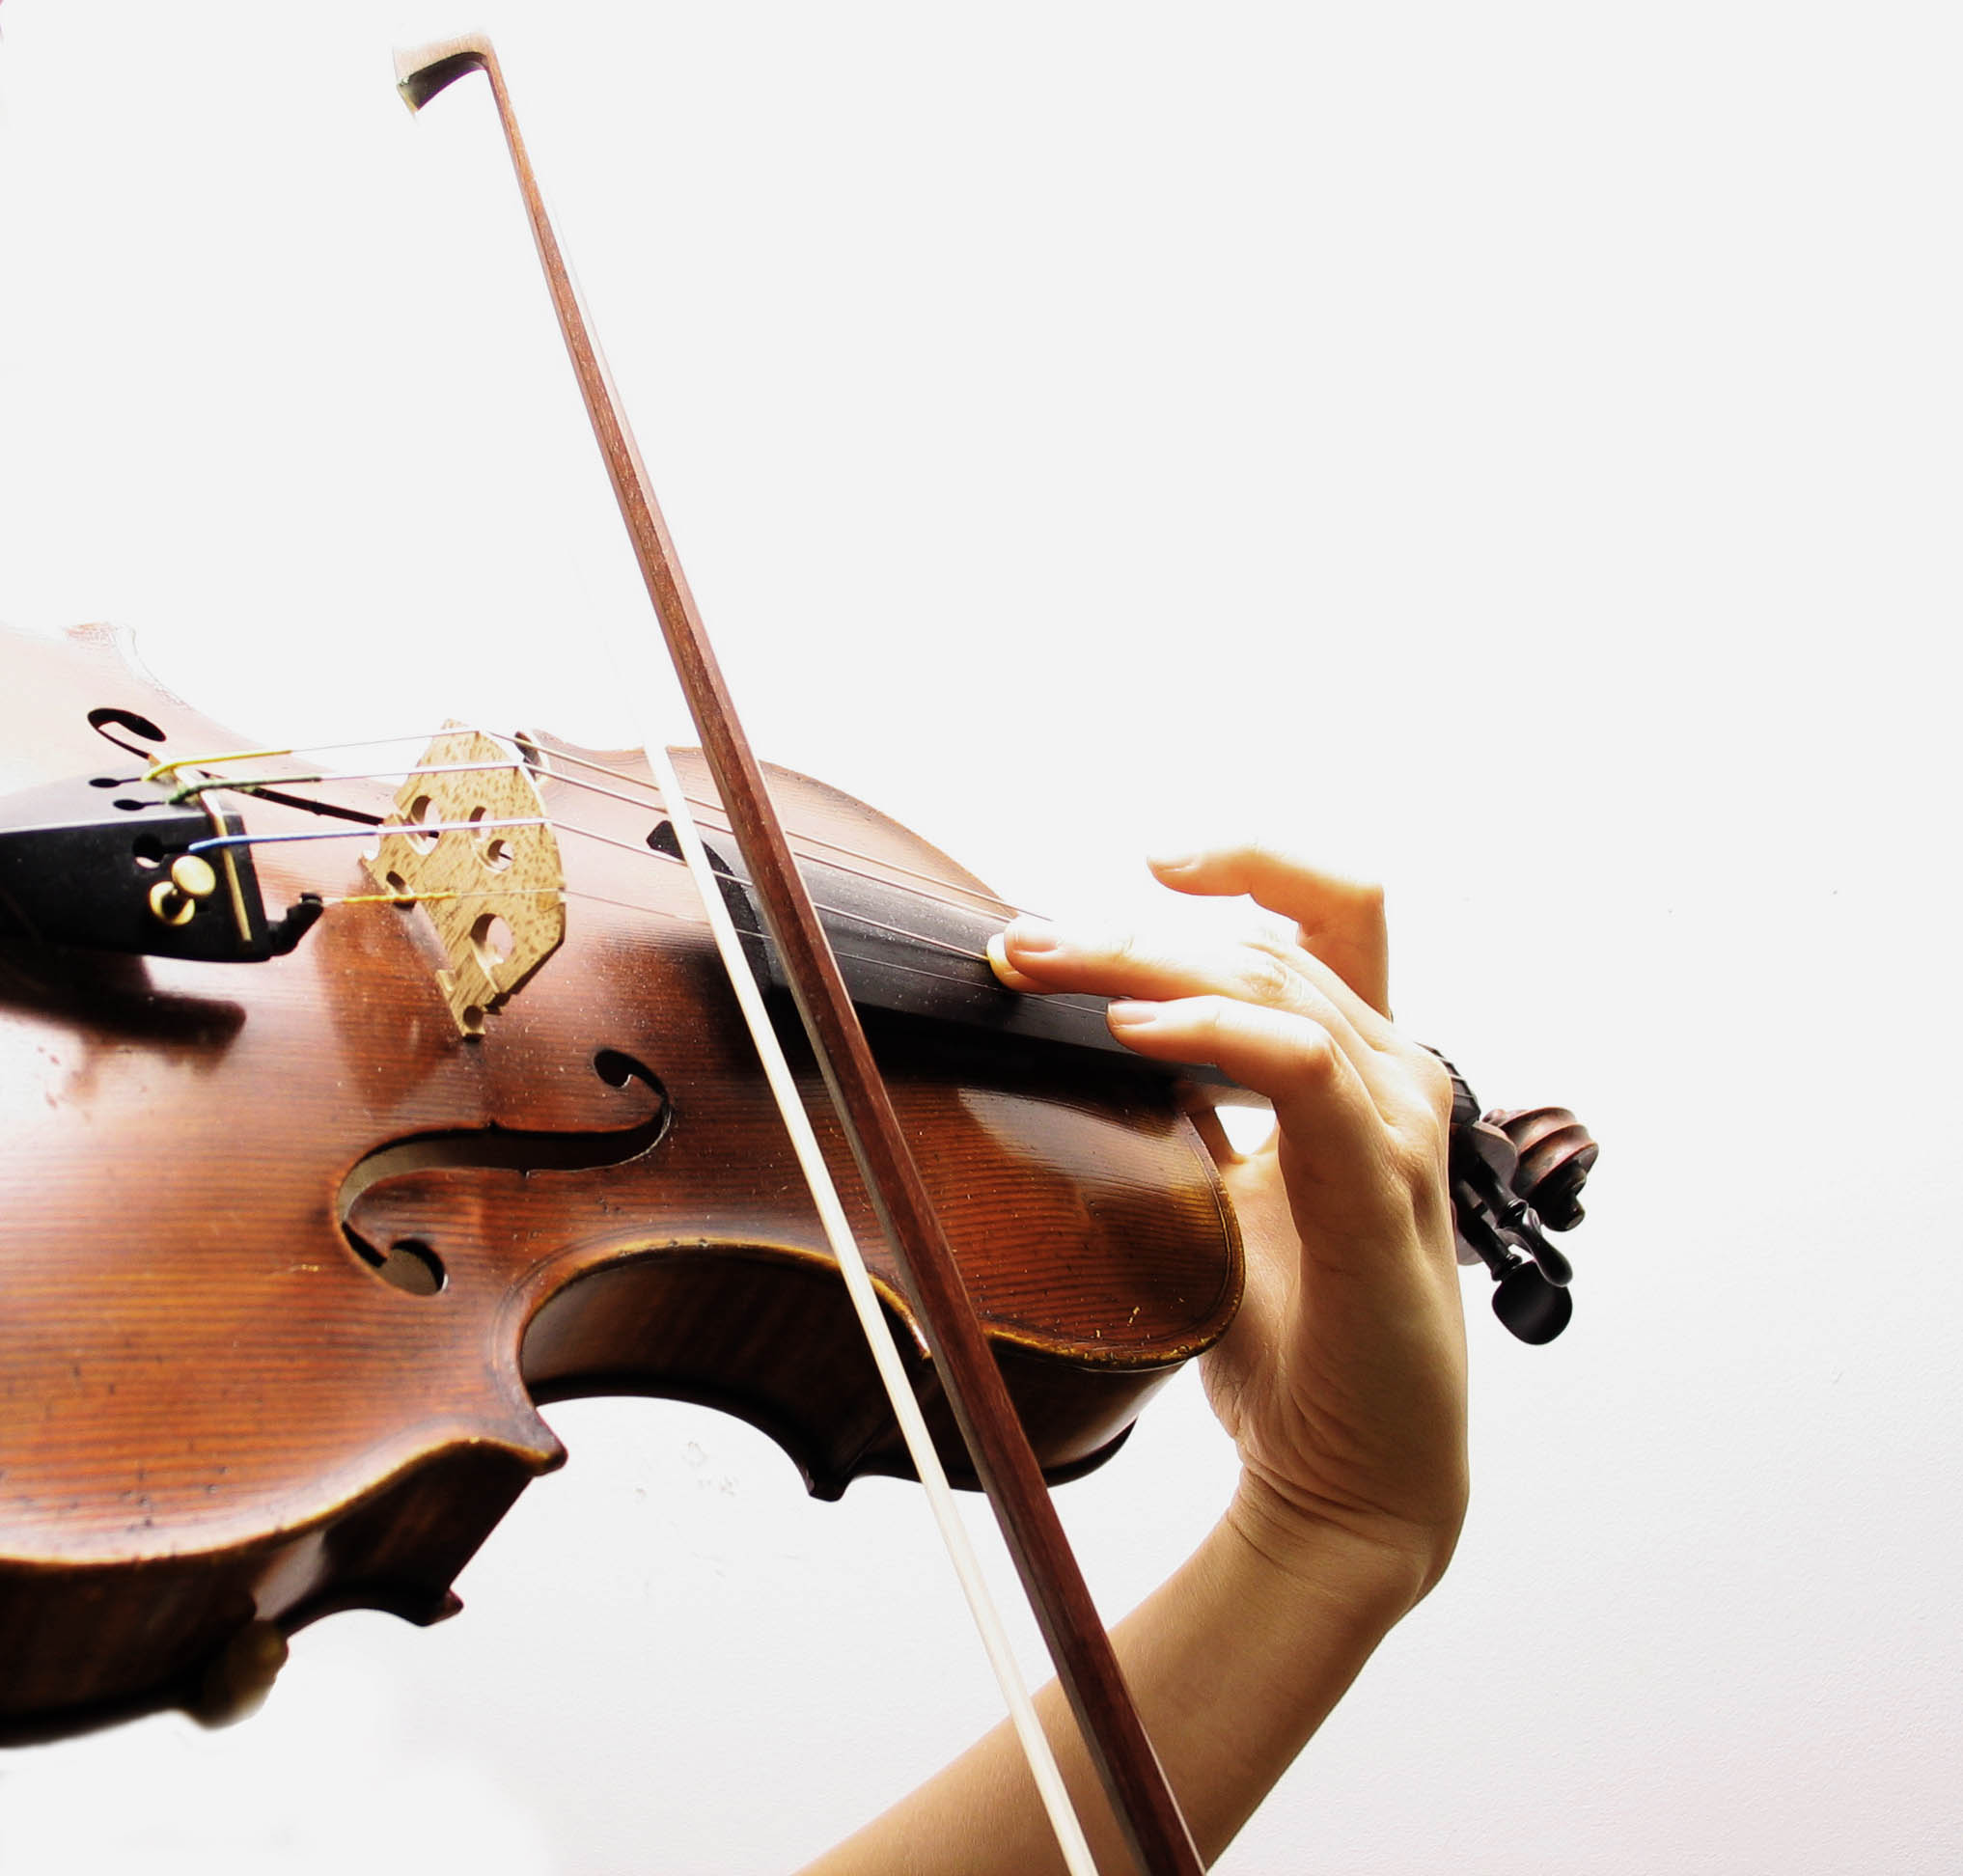 http://www.synful.com/Images/Violin%20Hand%20iStock_000000278306_L2.jpg